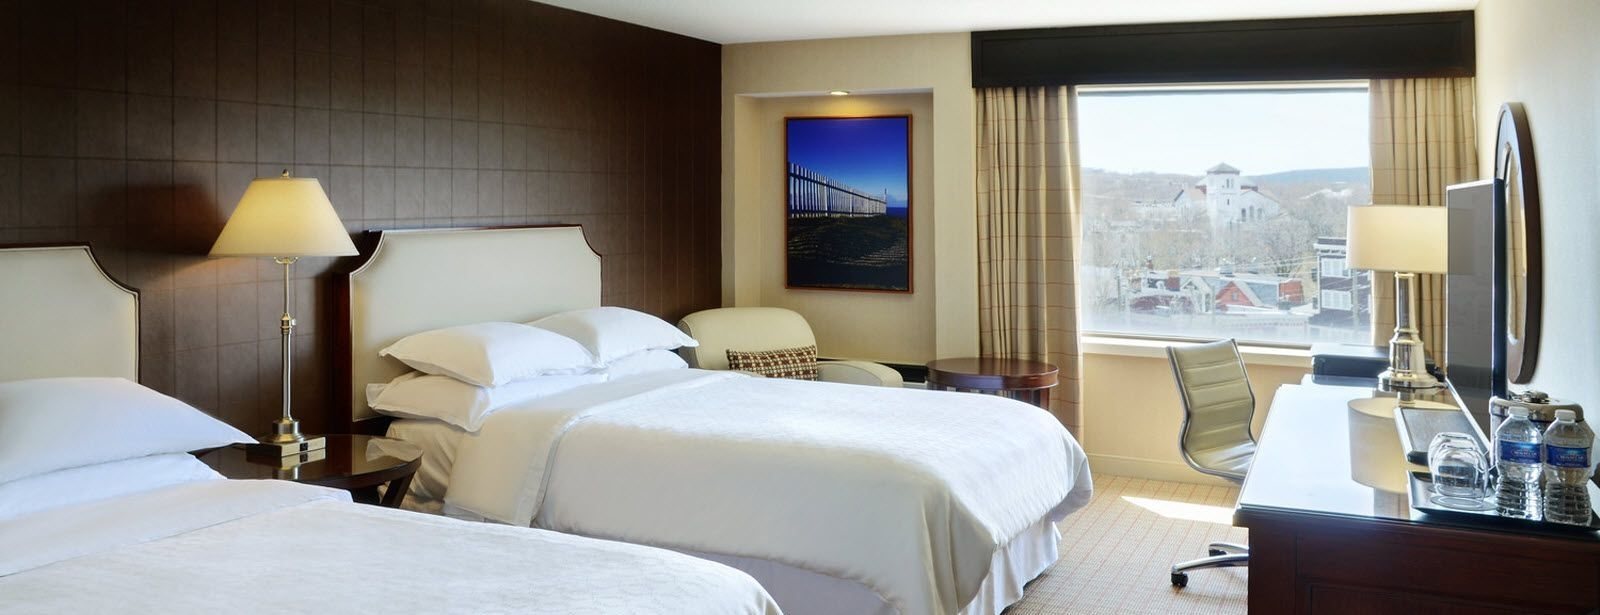 Sheraton Hotel Newfoundland Accommocations - Traditional Double Guest Room